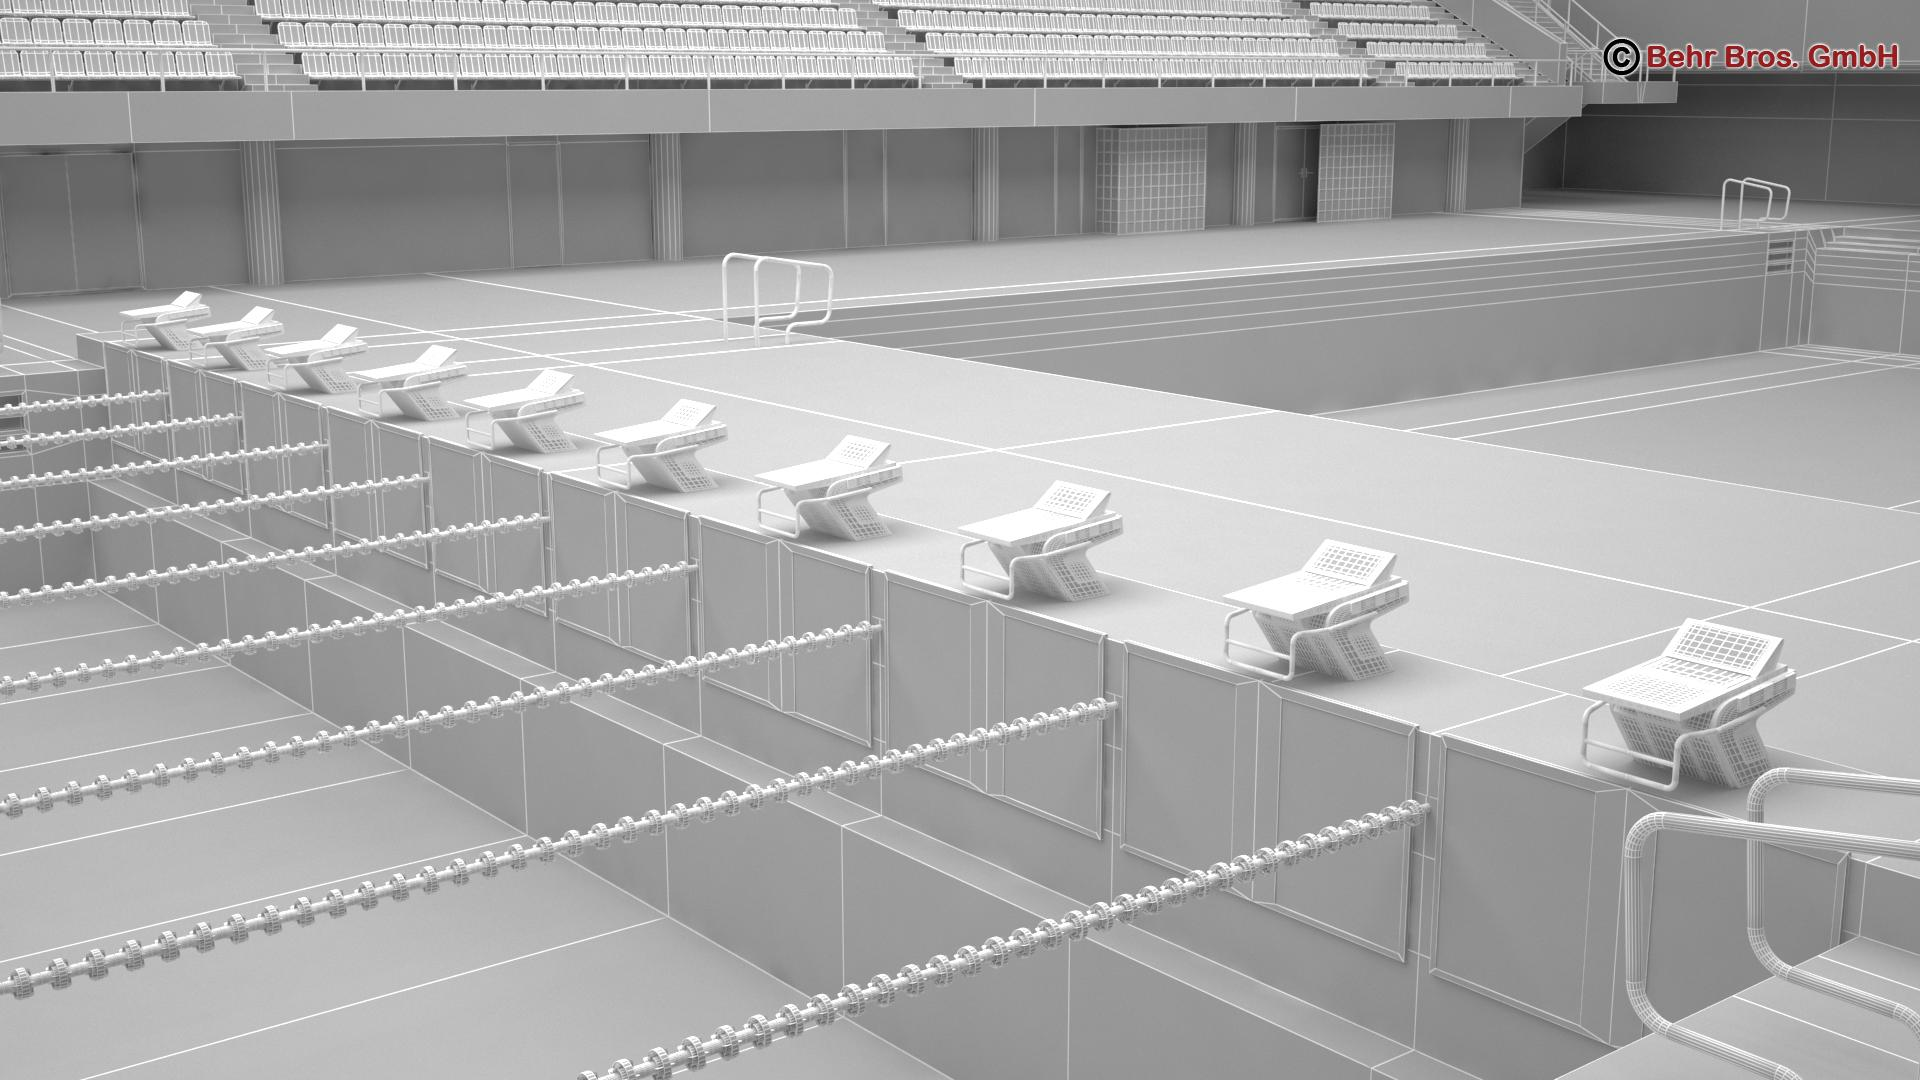 swim stadium 3d model 3ds max fbx c4d lwo ma mb obj 204442